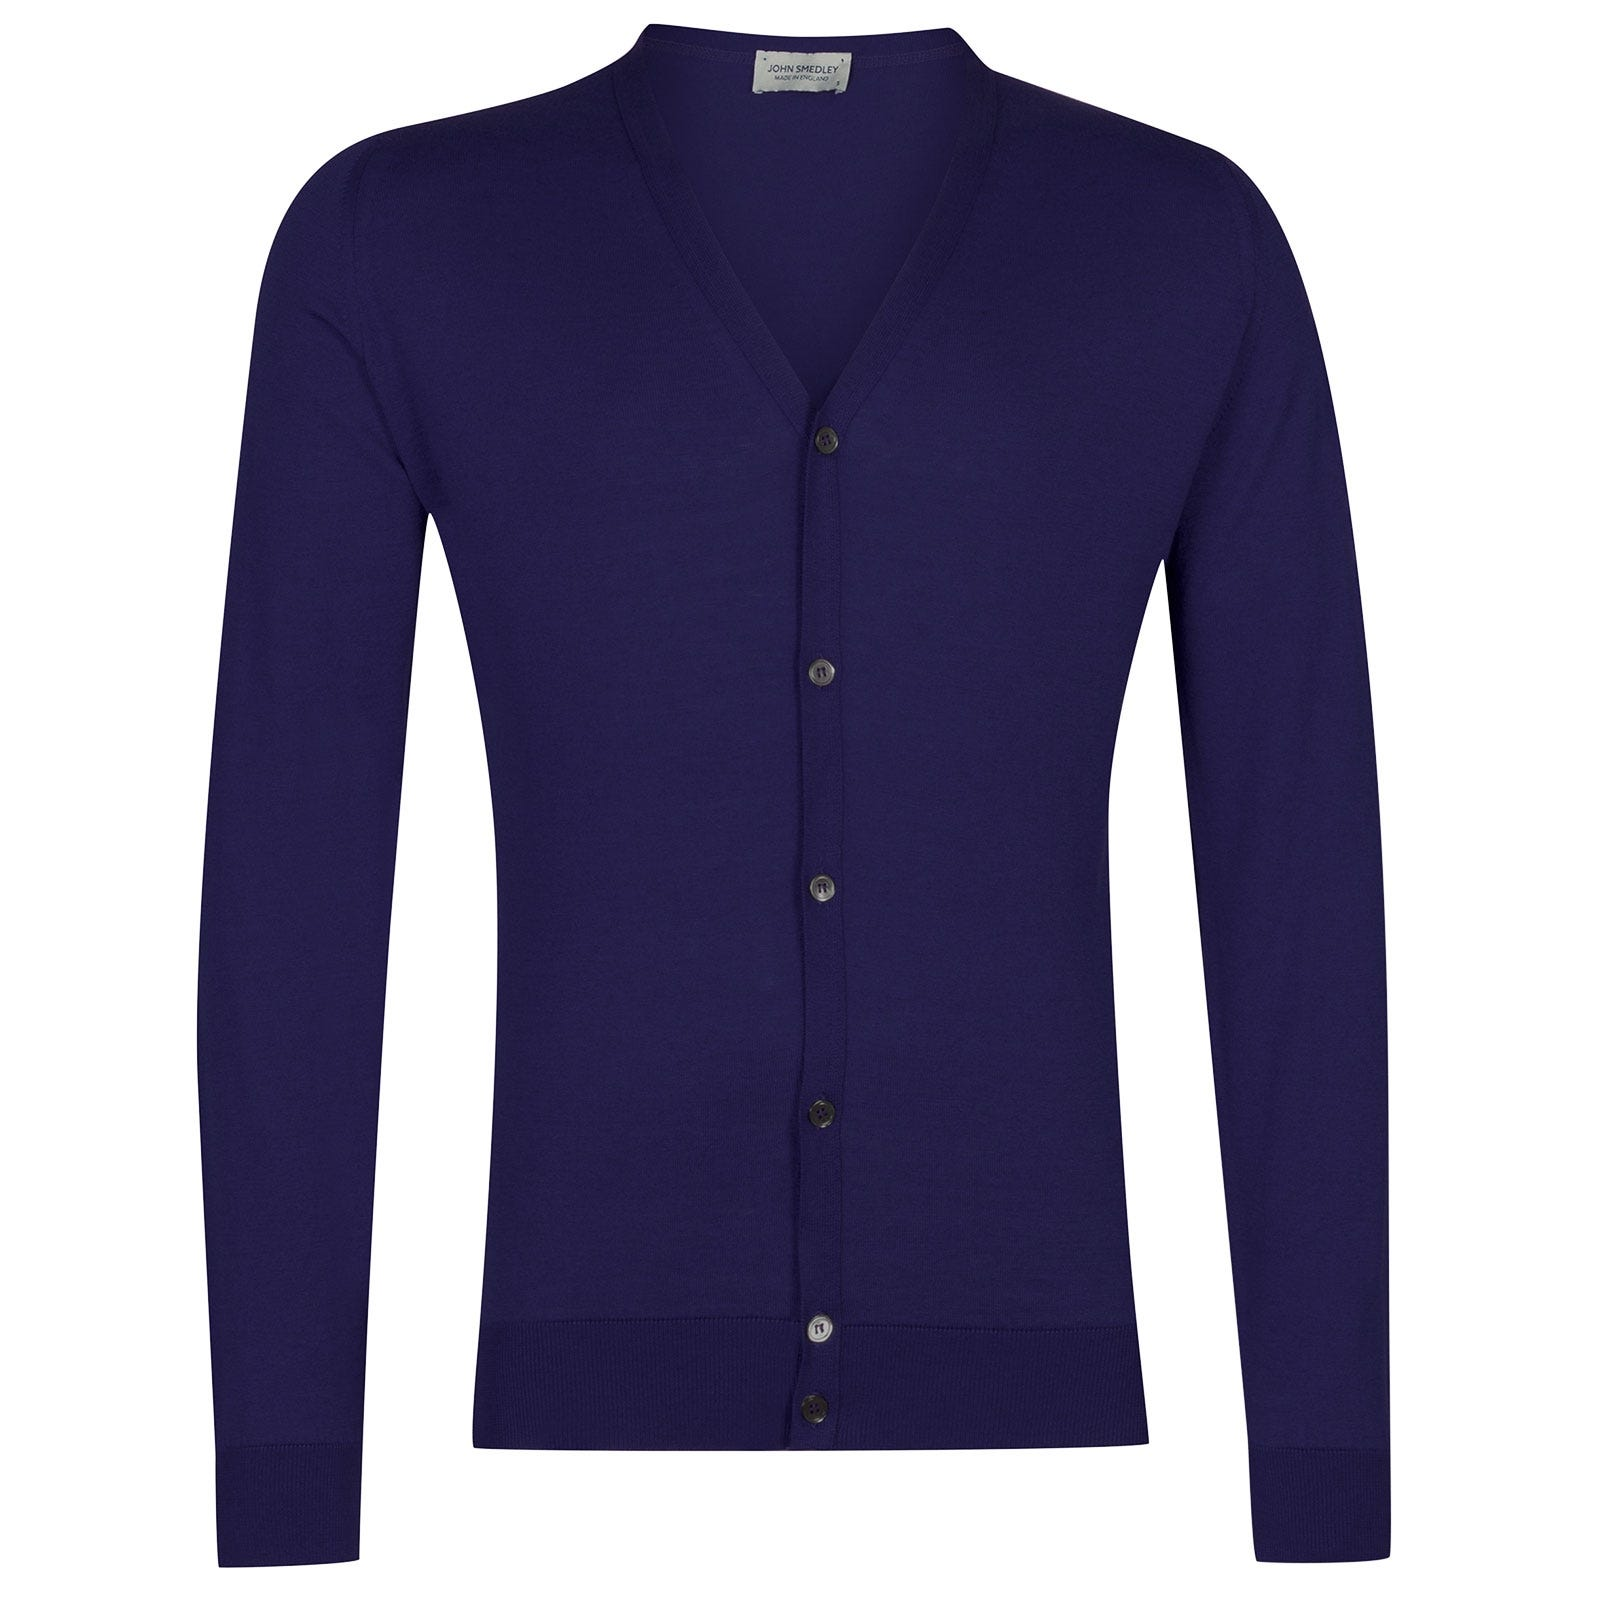 John Smedley Whitchurch Sea Island Cotton Cardigan in Serge Blue-XL